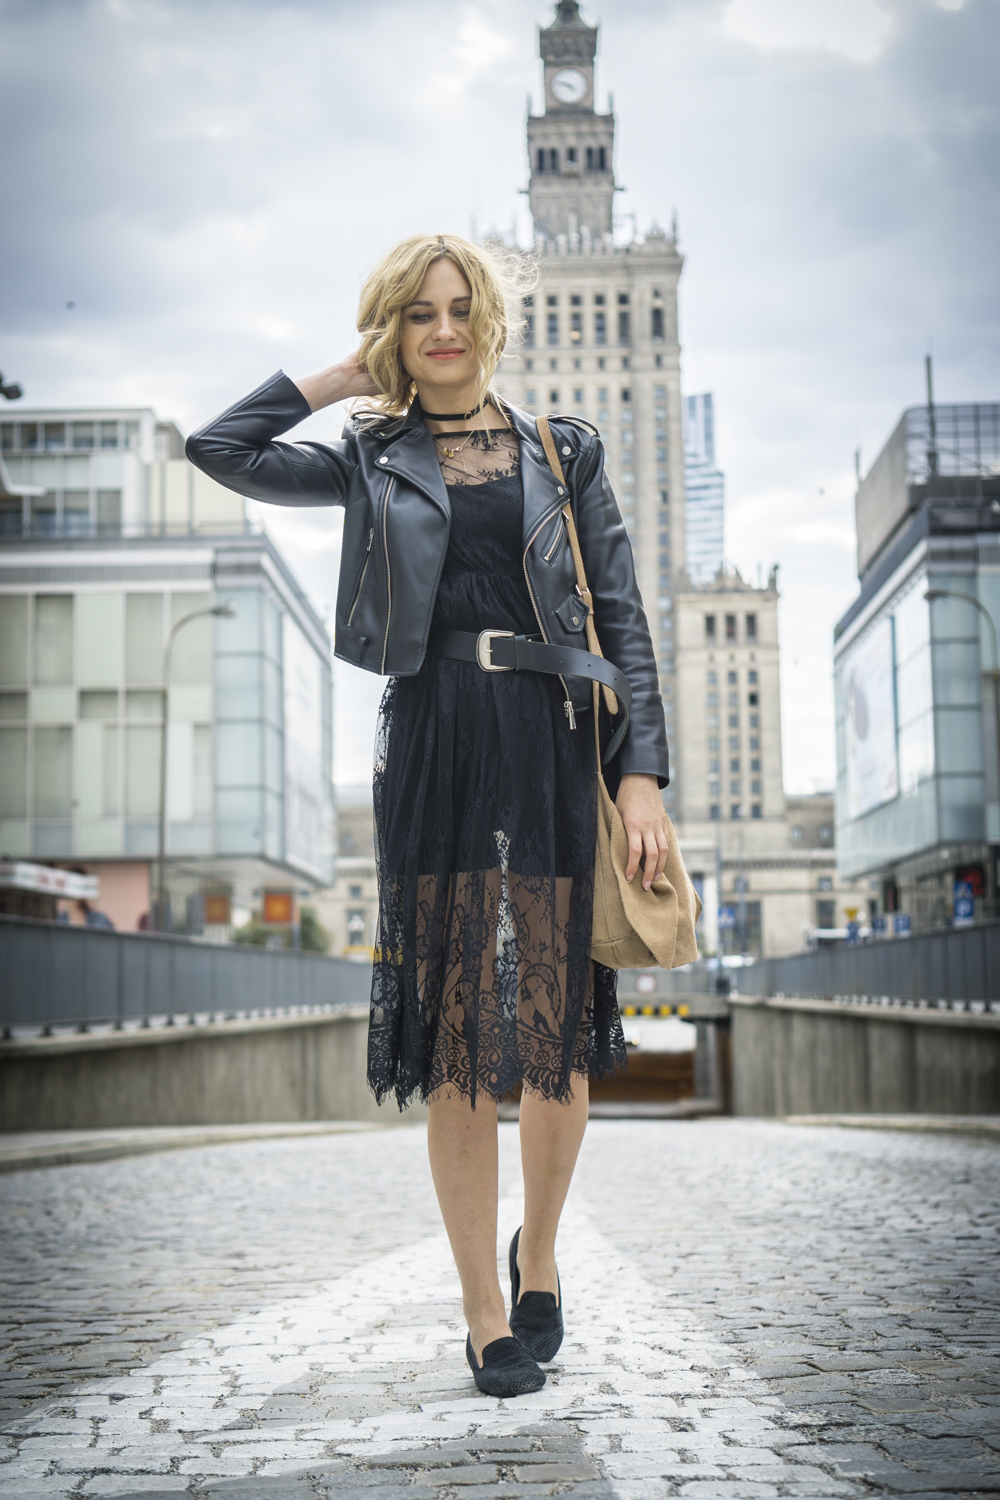 Black Lace Dress Casual Chic Street Style Fashion Blonde Tumblr Girl Look It Girl Lookbook Ootd